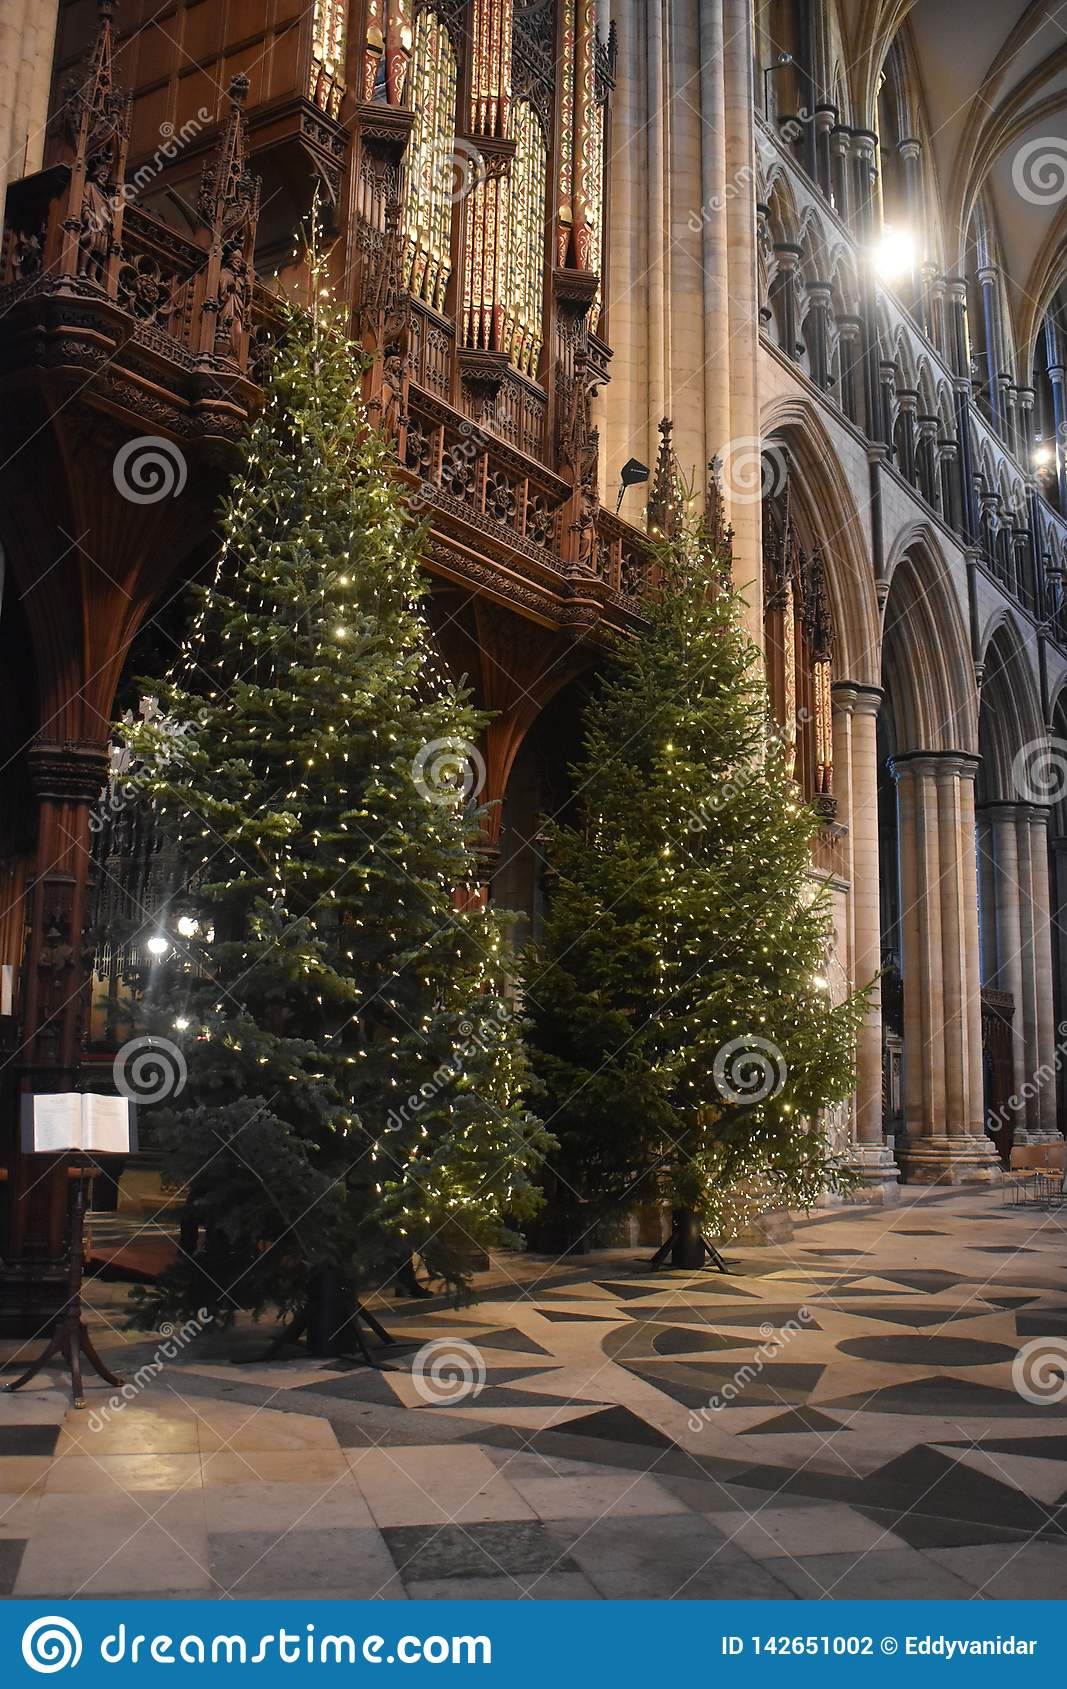 England Christmas Tree.Christmas Tree In Beverley Minister Yorkshire England Stock